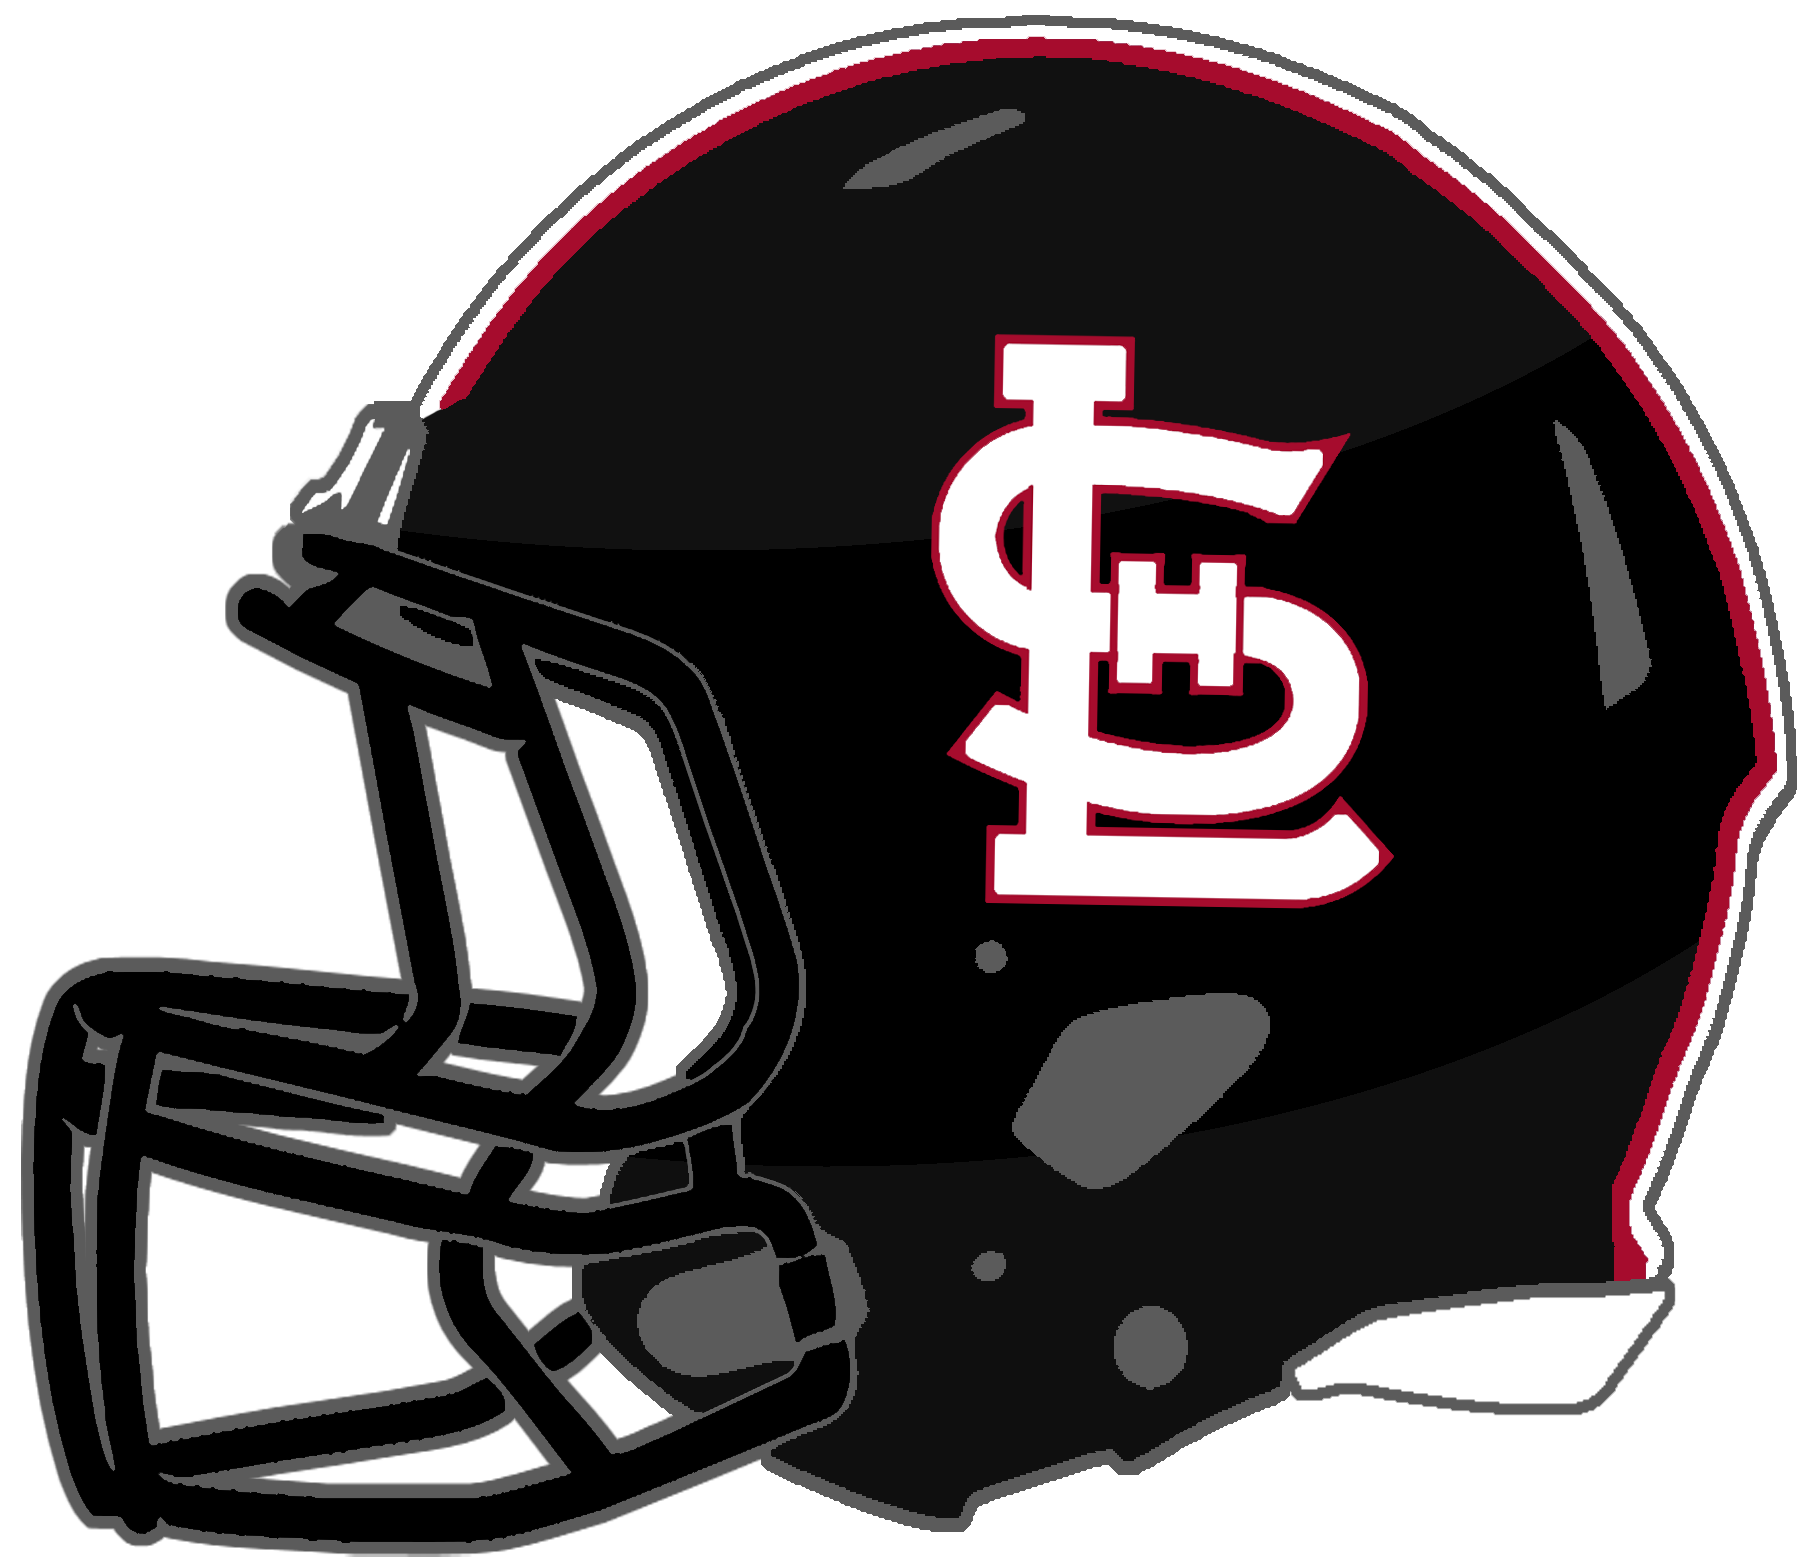 Panthers football helmet clipart free Mississippi High School Football Helmets: 1A free